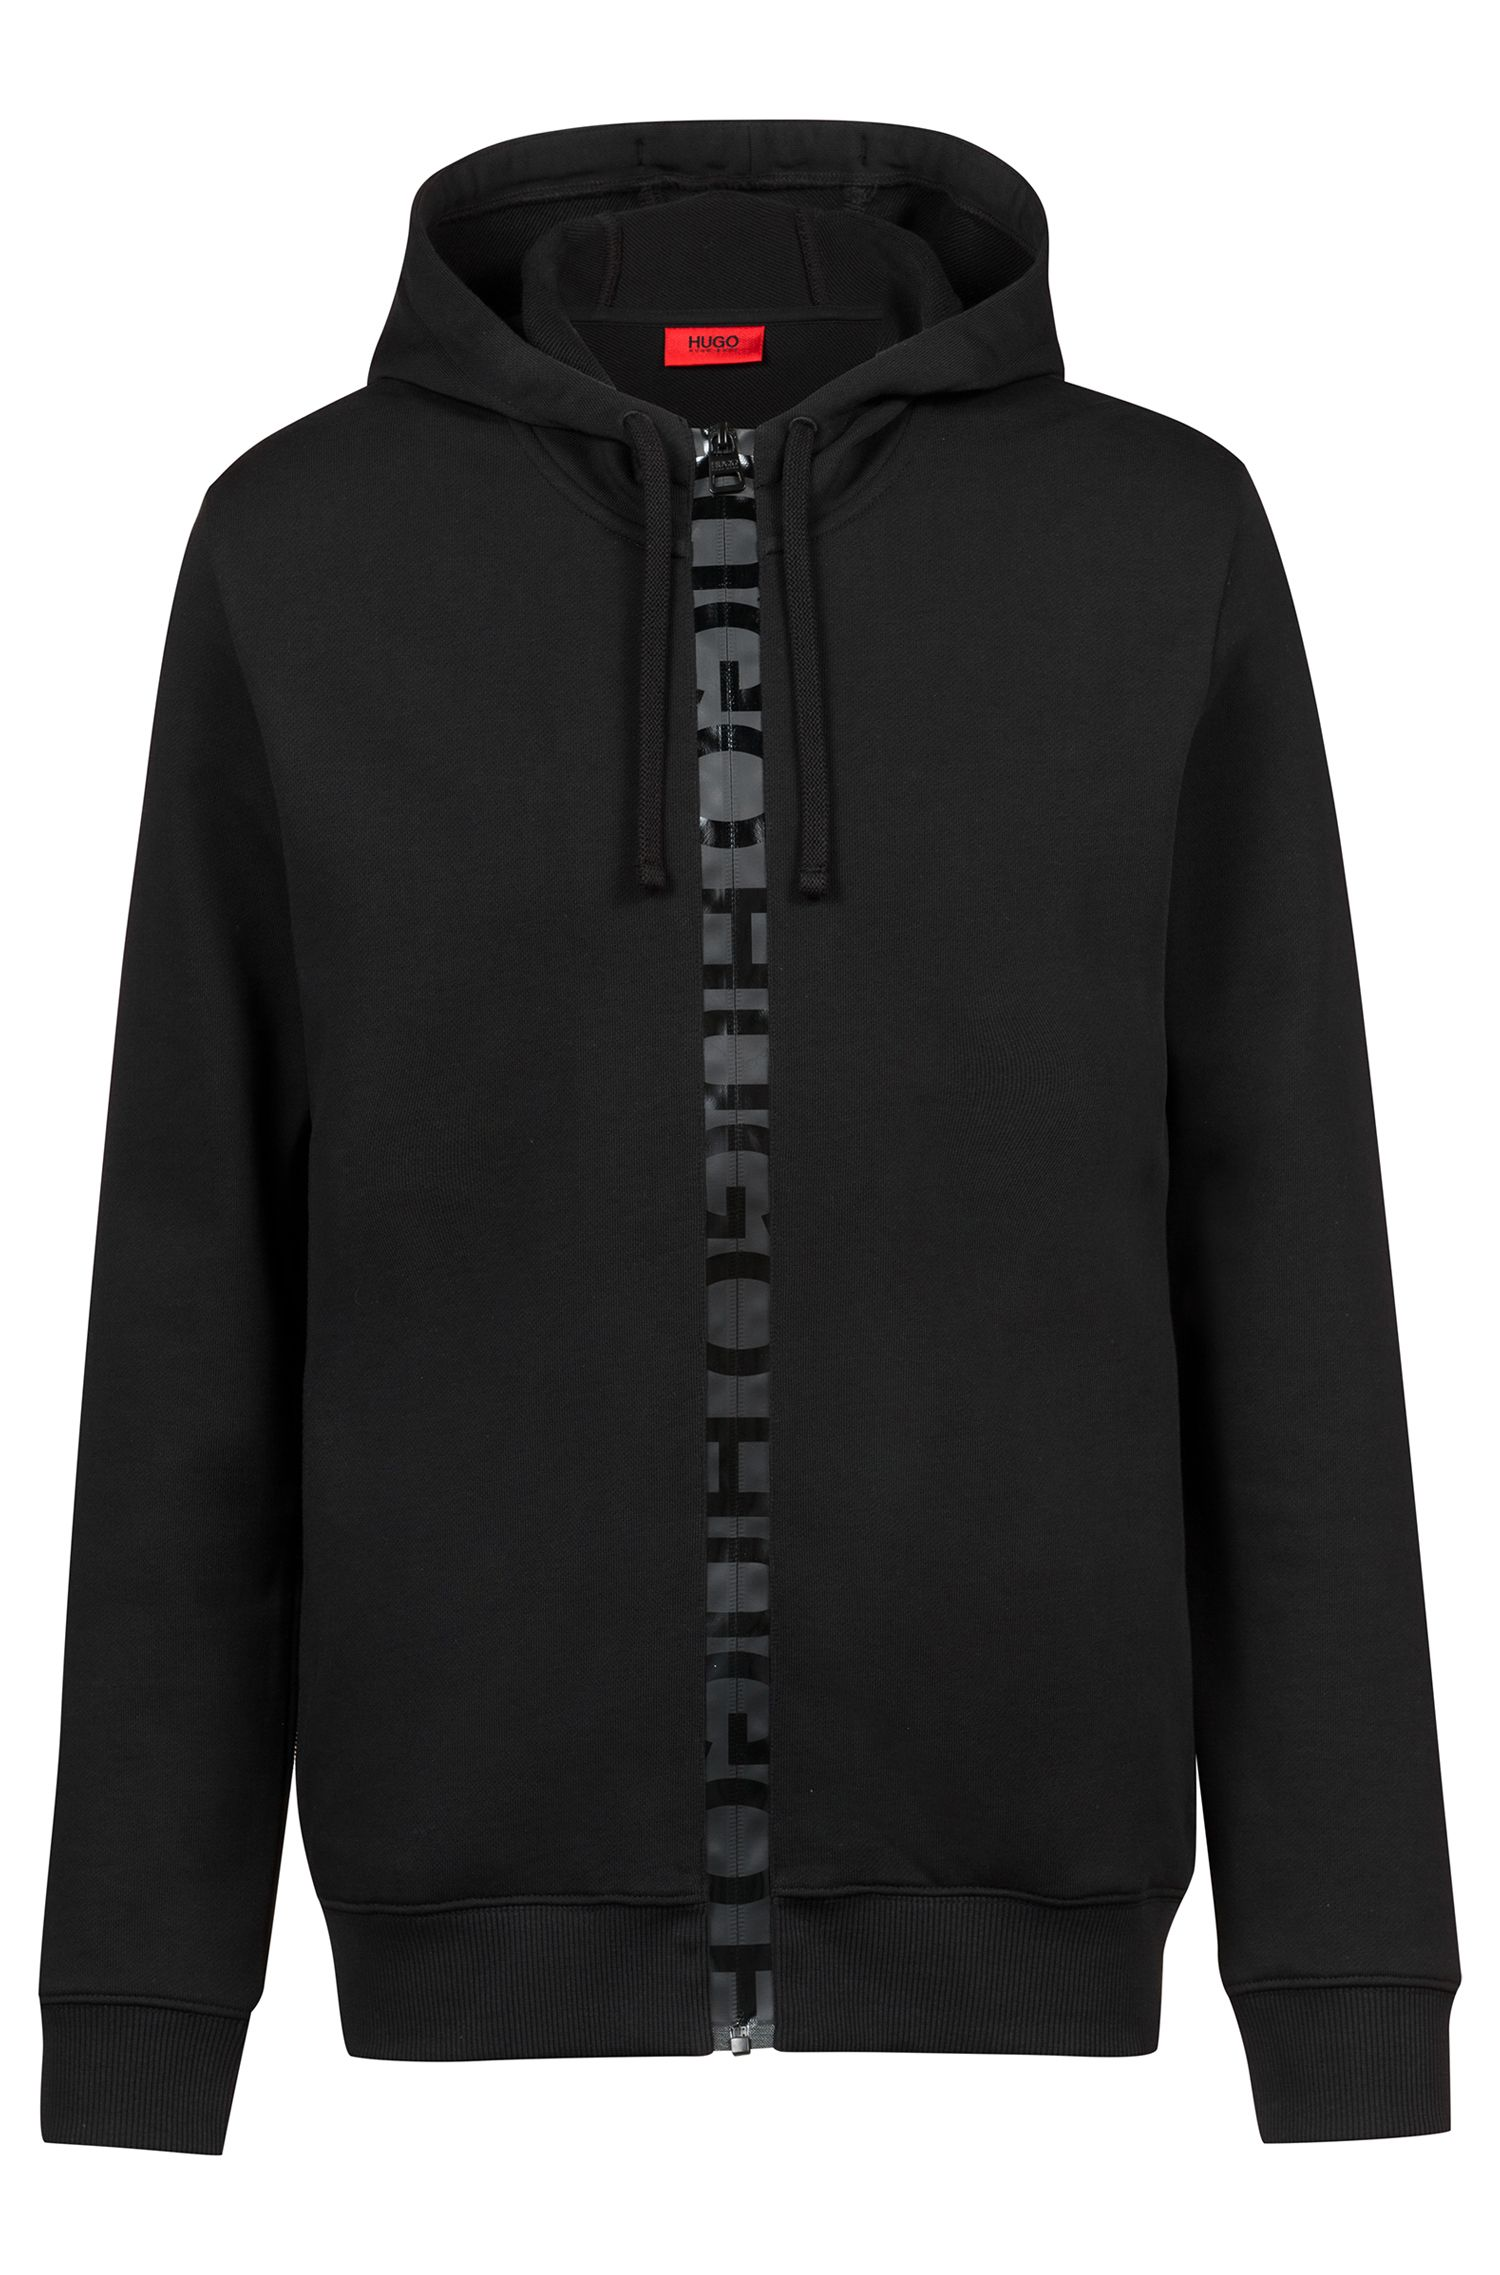 French-terry hooded sweatshirt with logo-tape zipper, Black